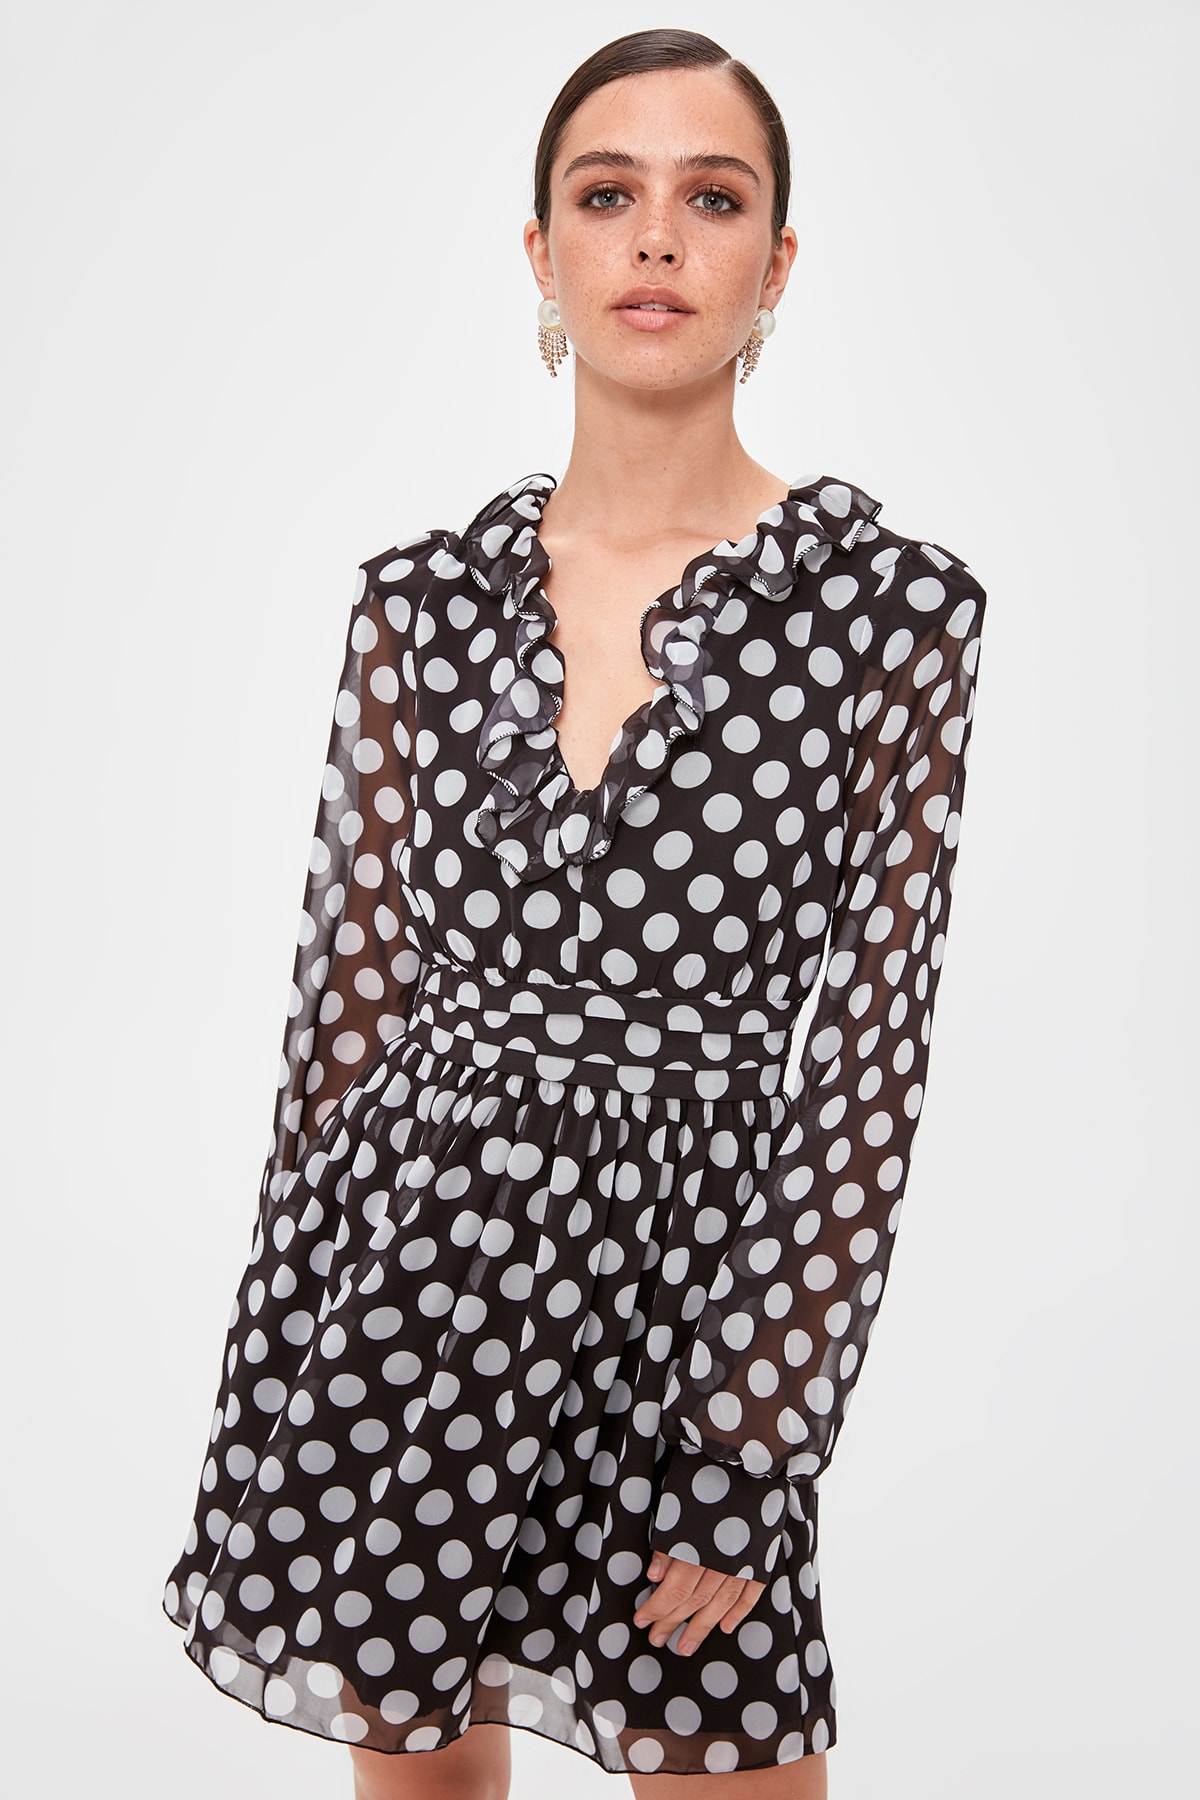 Trendyol Polka Dot Printed Dress TPRAW20EL1348